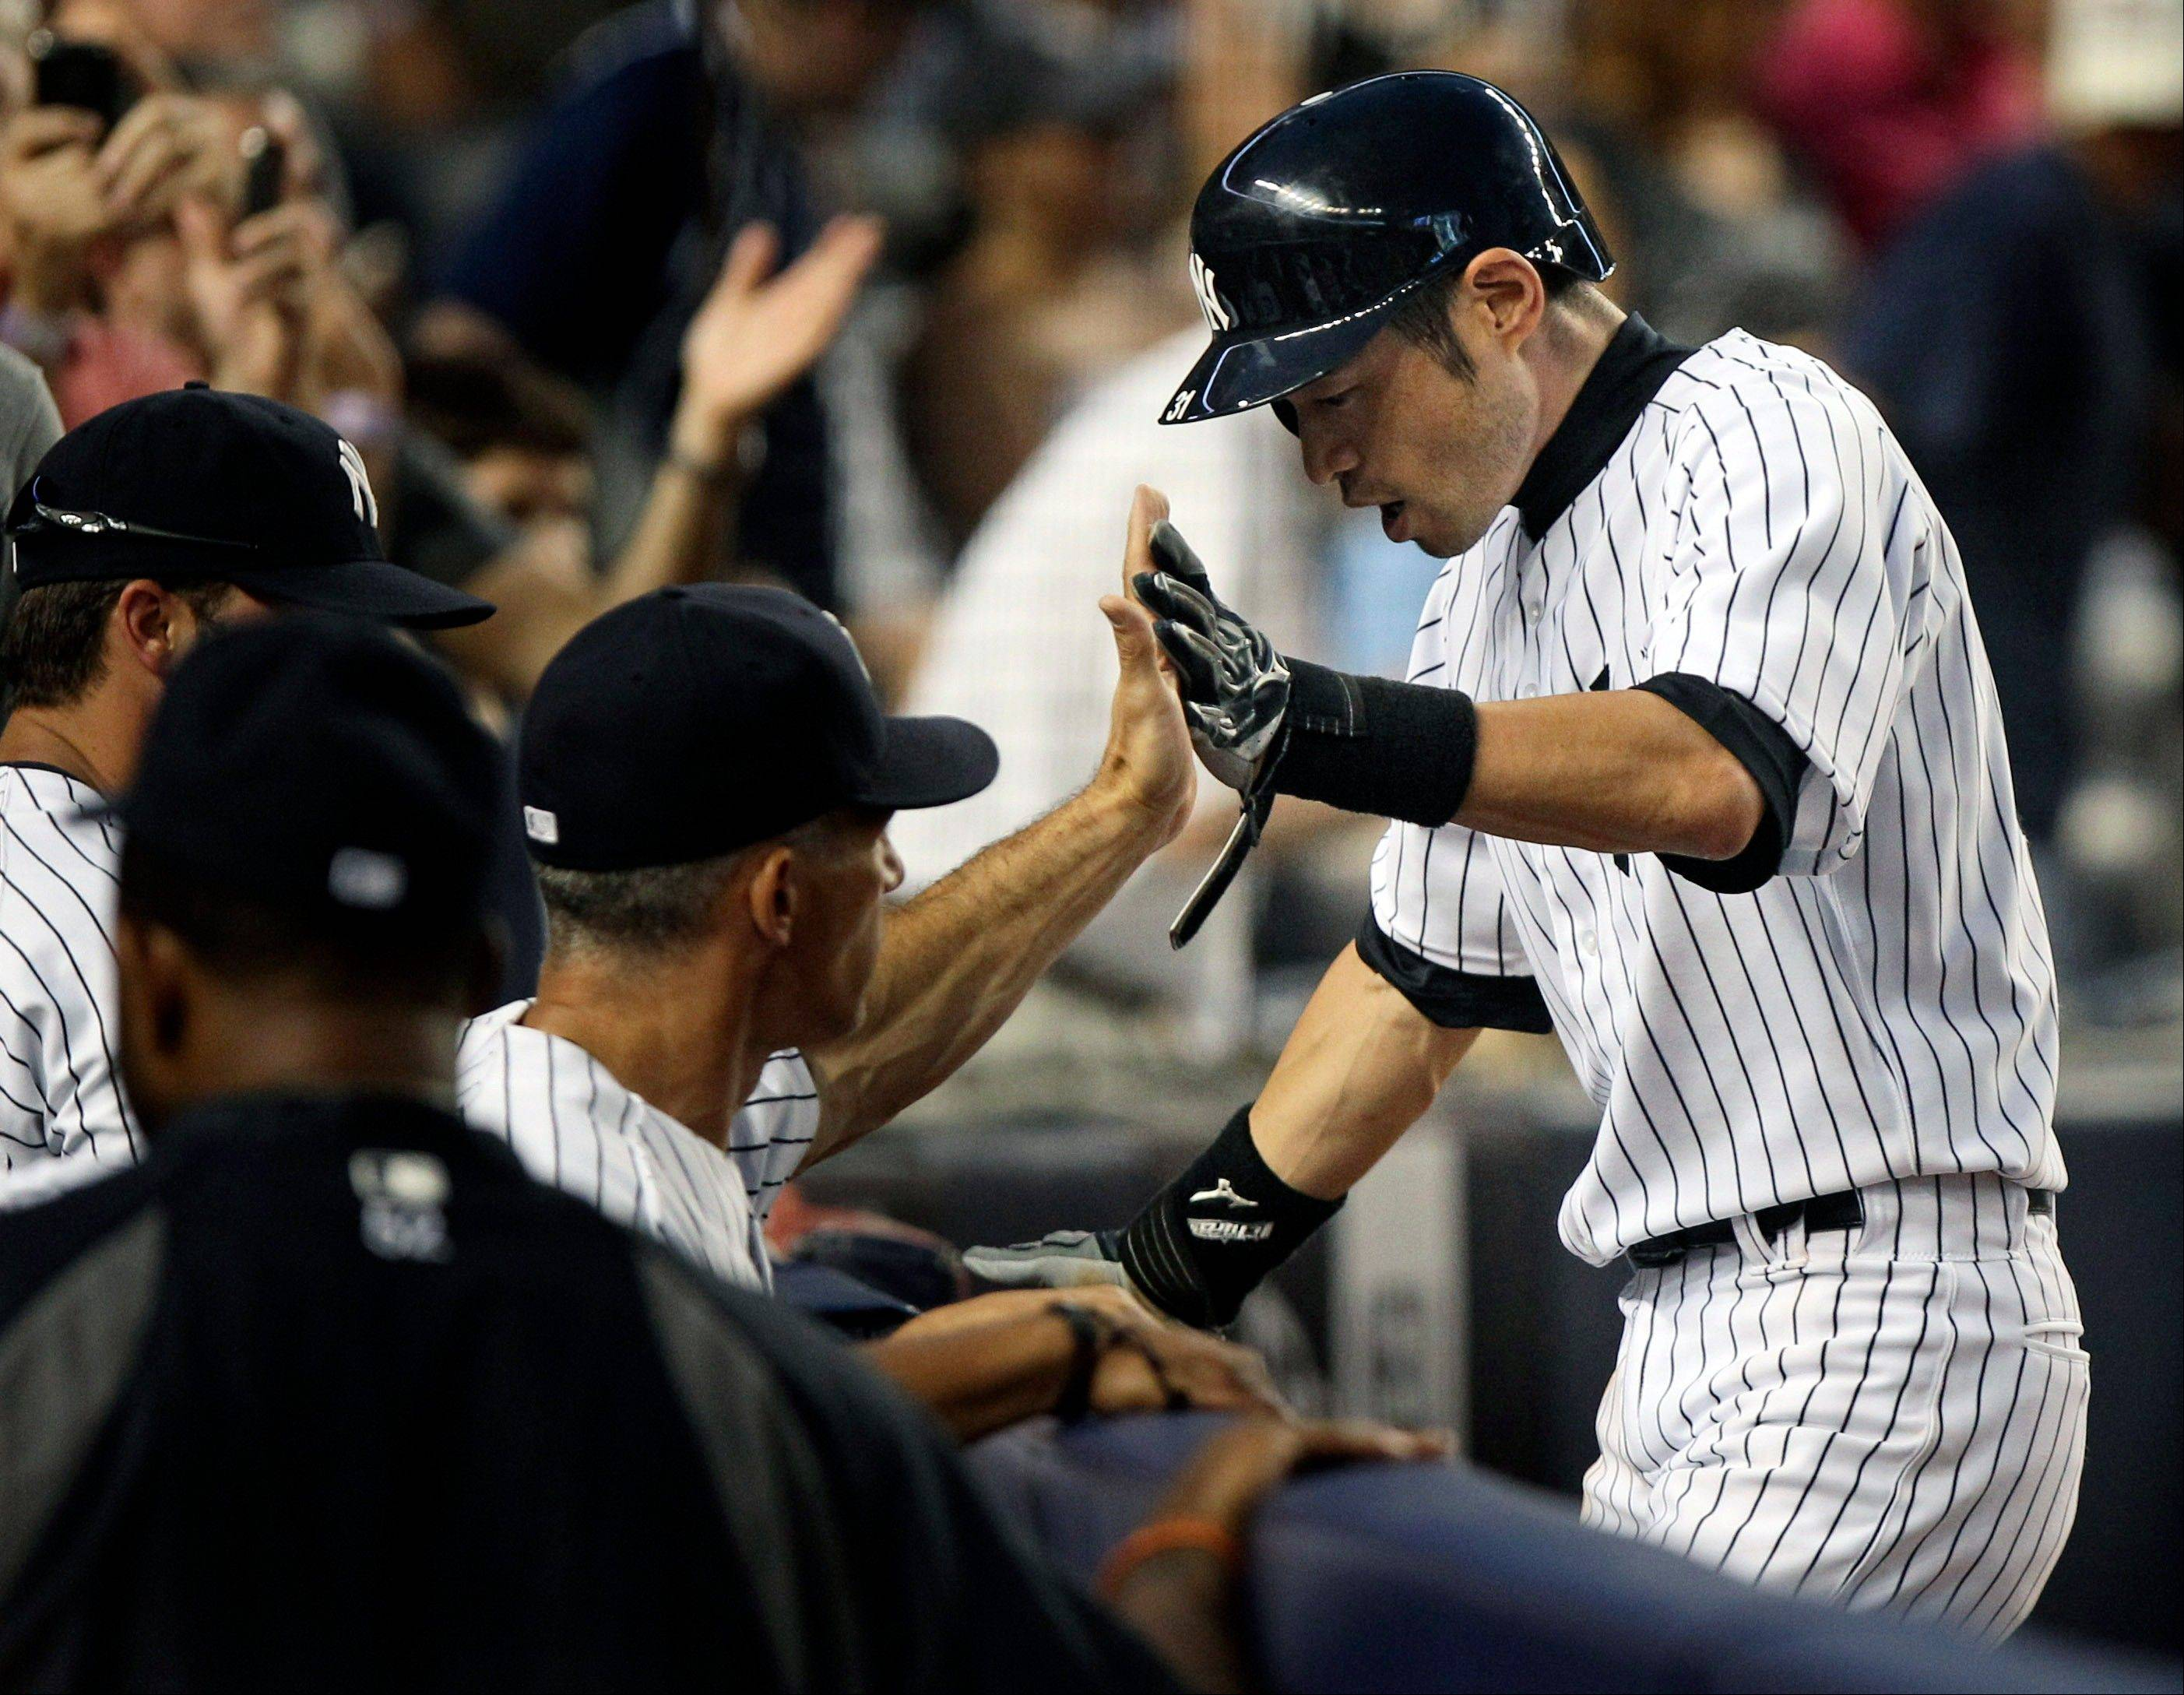 The Yankees' Ichiro Suzuki, right, celebrates after scoring on a home run hit by Russell Martin during the fourth inning Friday at home against Boston.